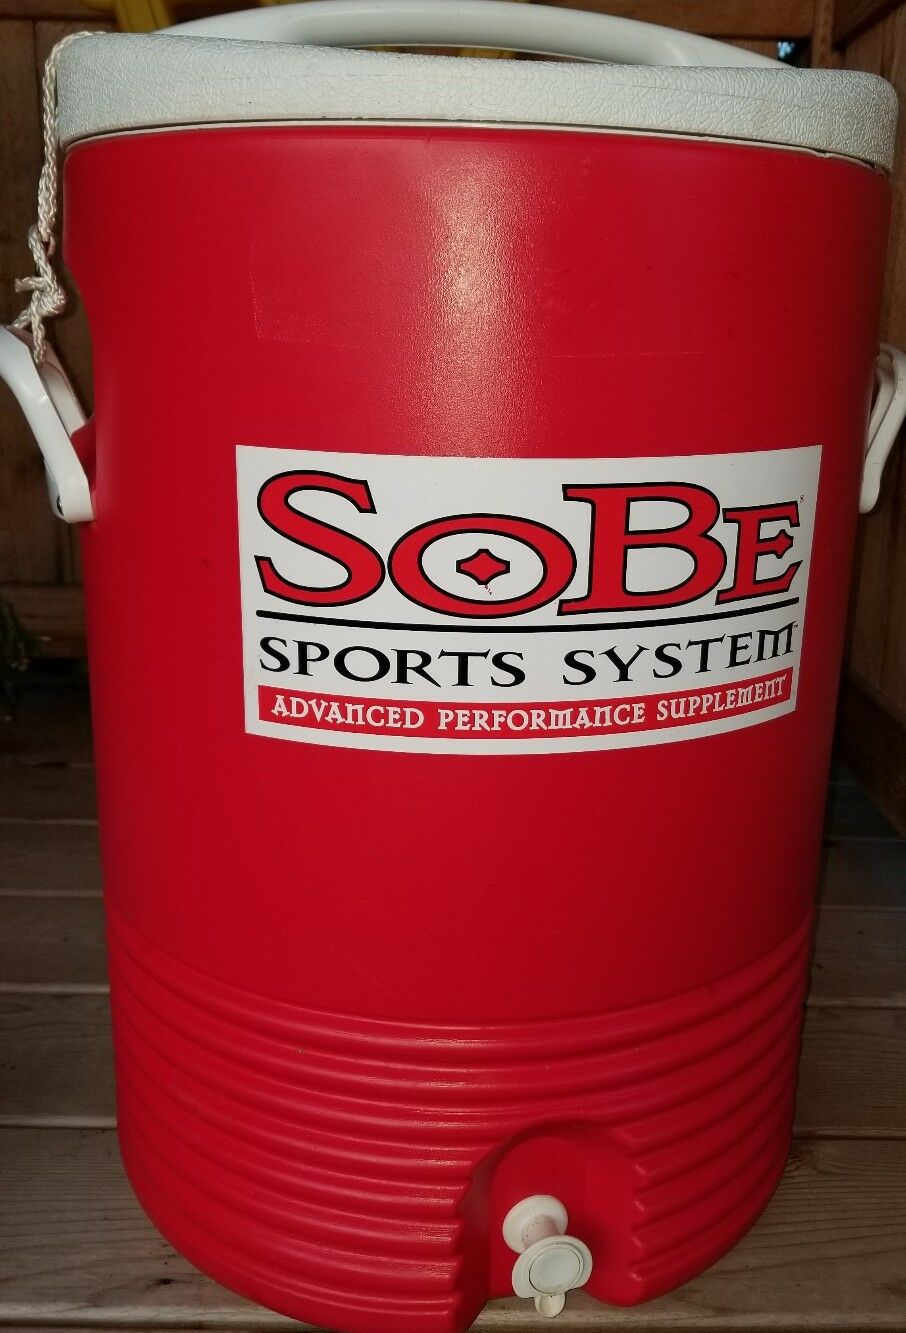 Sobe sports systems 10 Gallon Drink Cooler igloo vtg Houston Texas  double sided